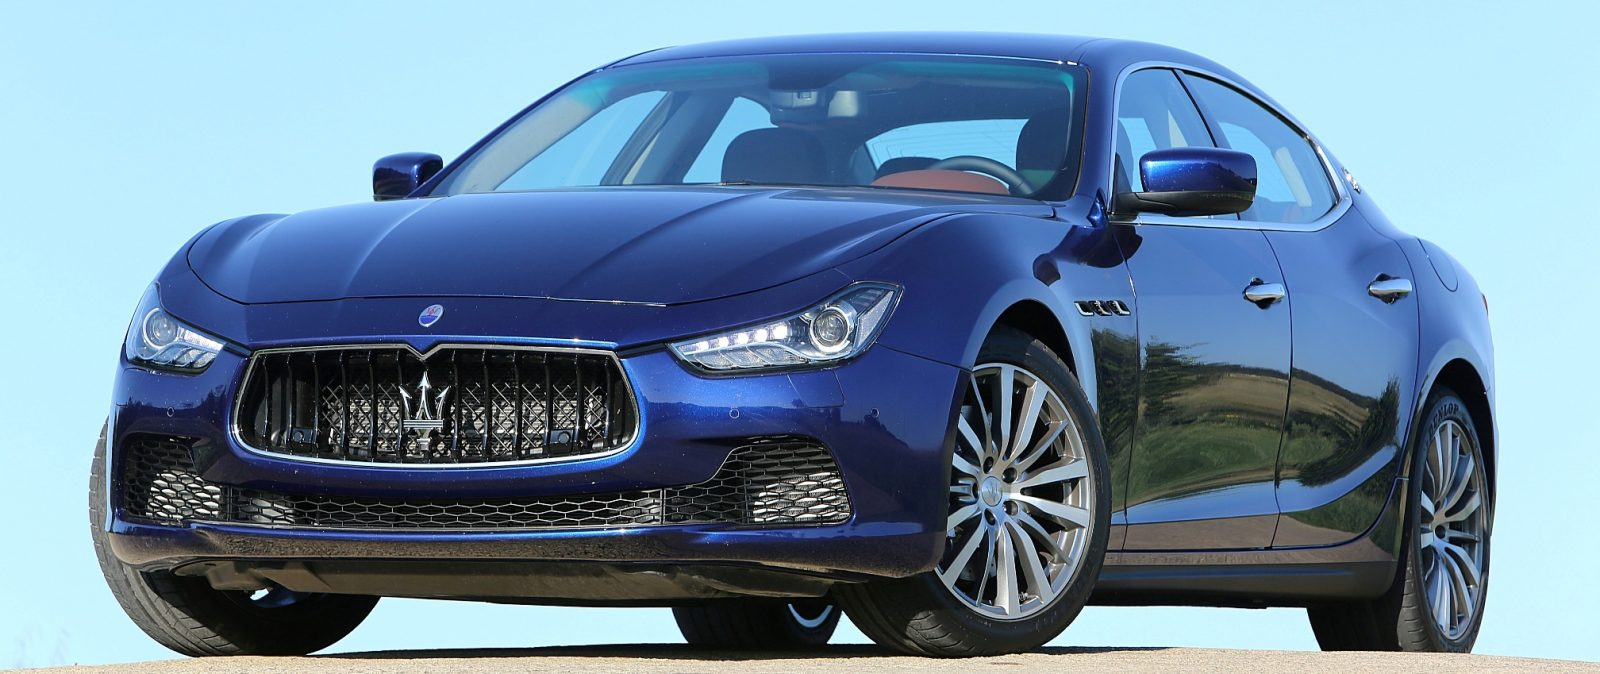 2014 Maserati Ghibli - Latest Official Photos 6